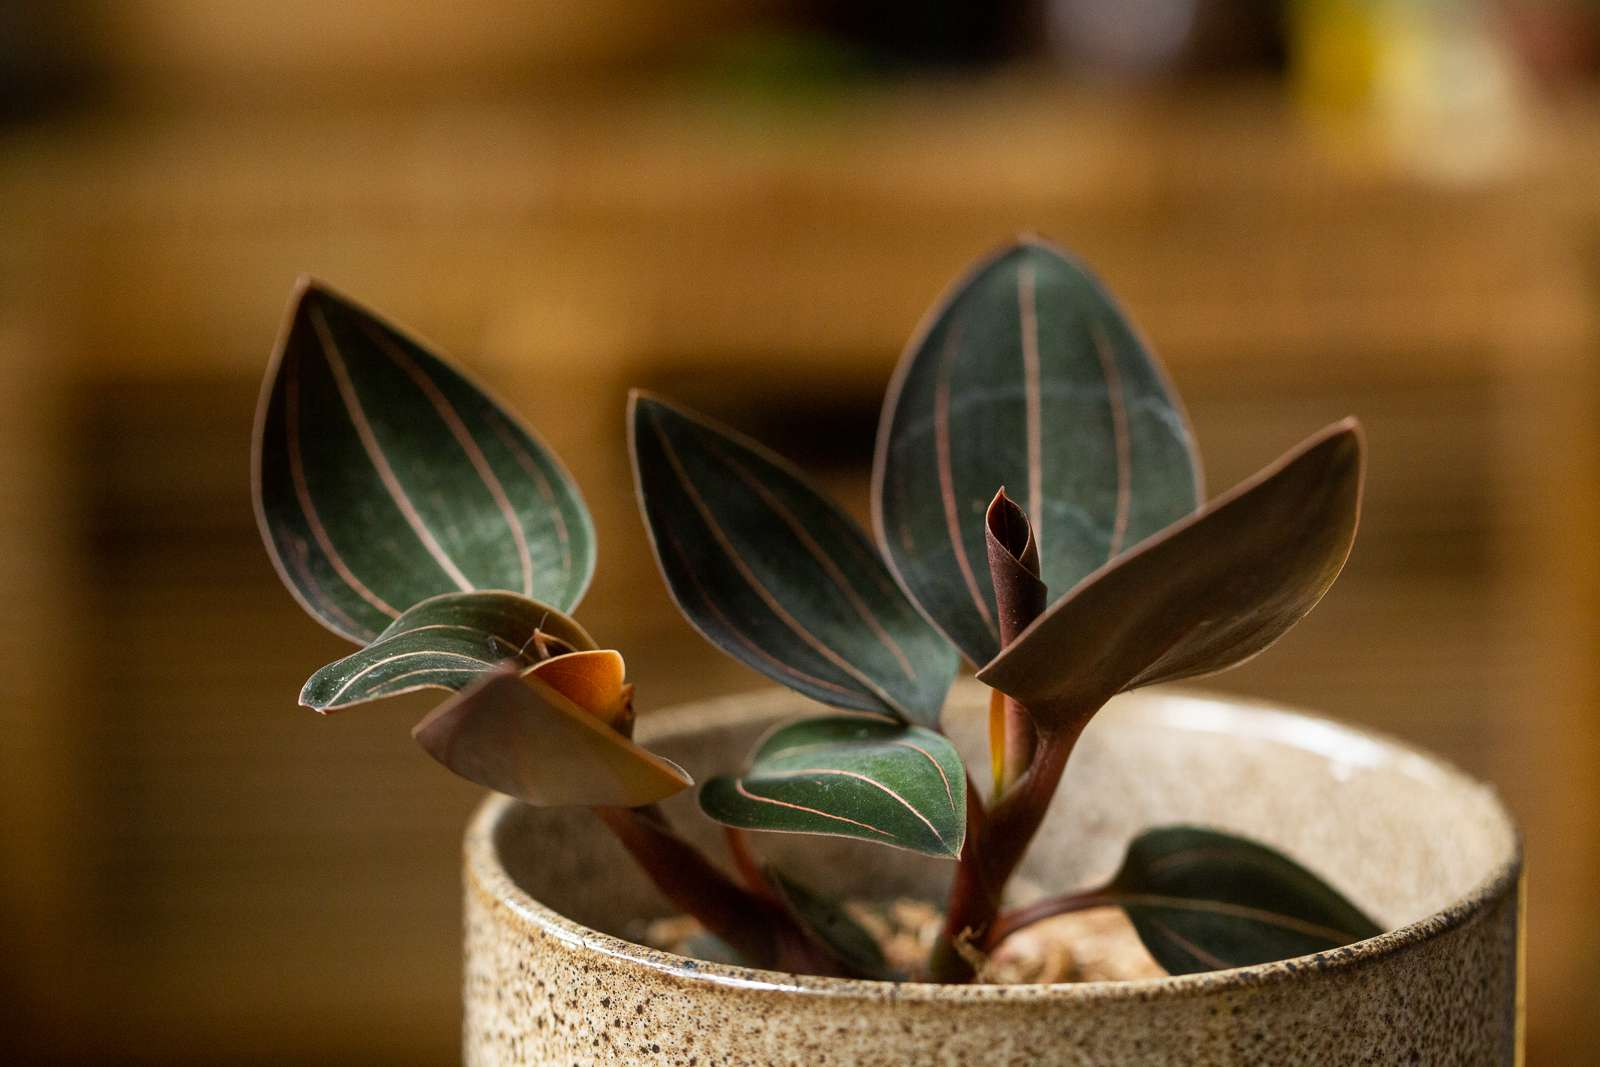 Ludisia orchid with almond-shaped leaves with yellow stripes in ceramic pot